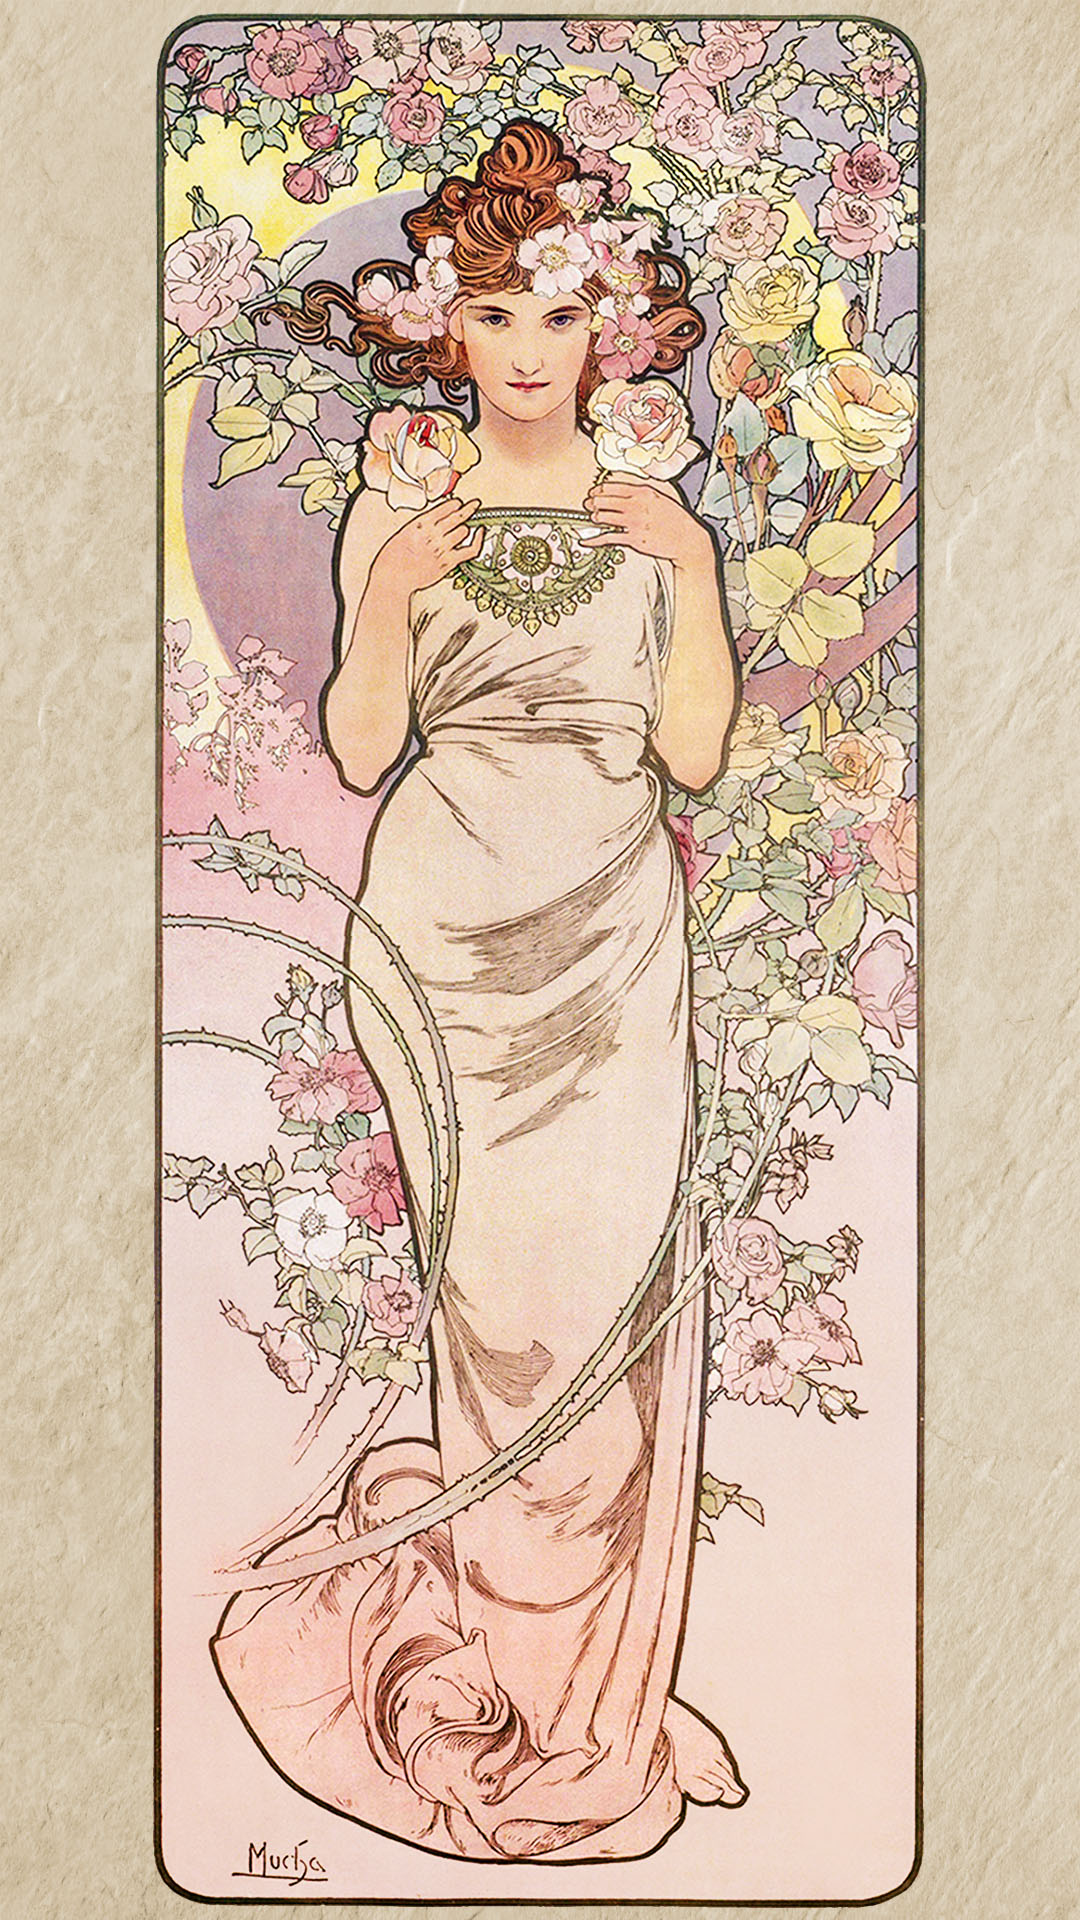 ミュシャ 四つの花 バラ Alfons Mucha - Four flowers rose 1080x1920 2